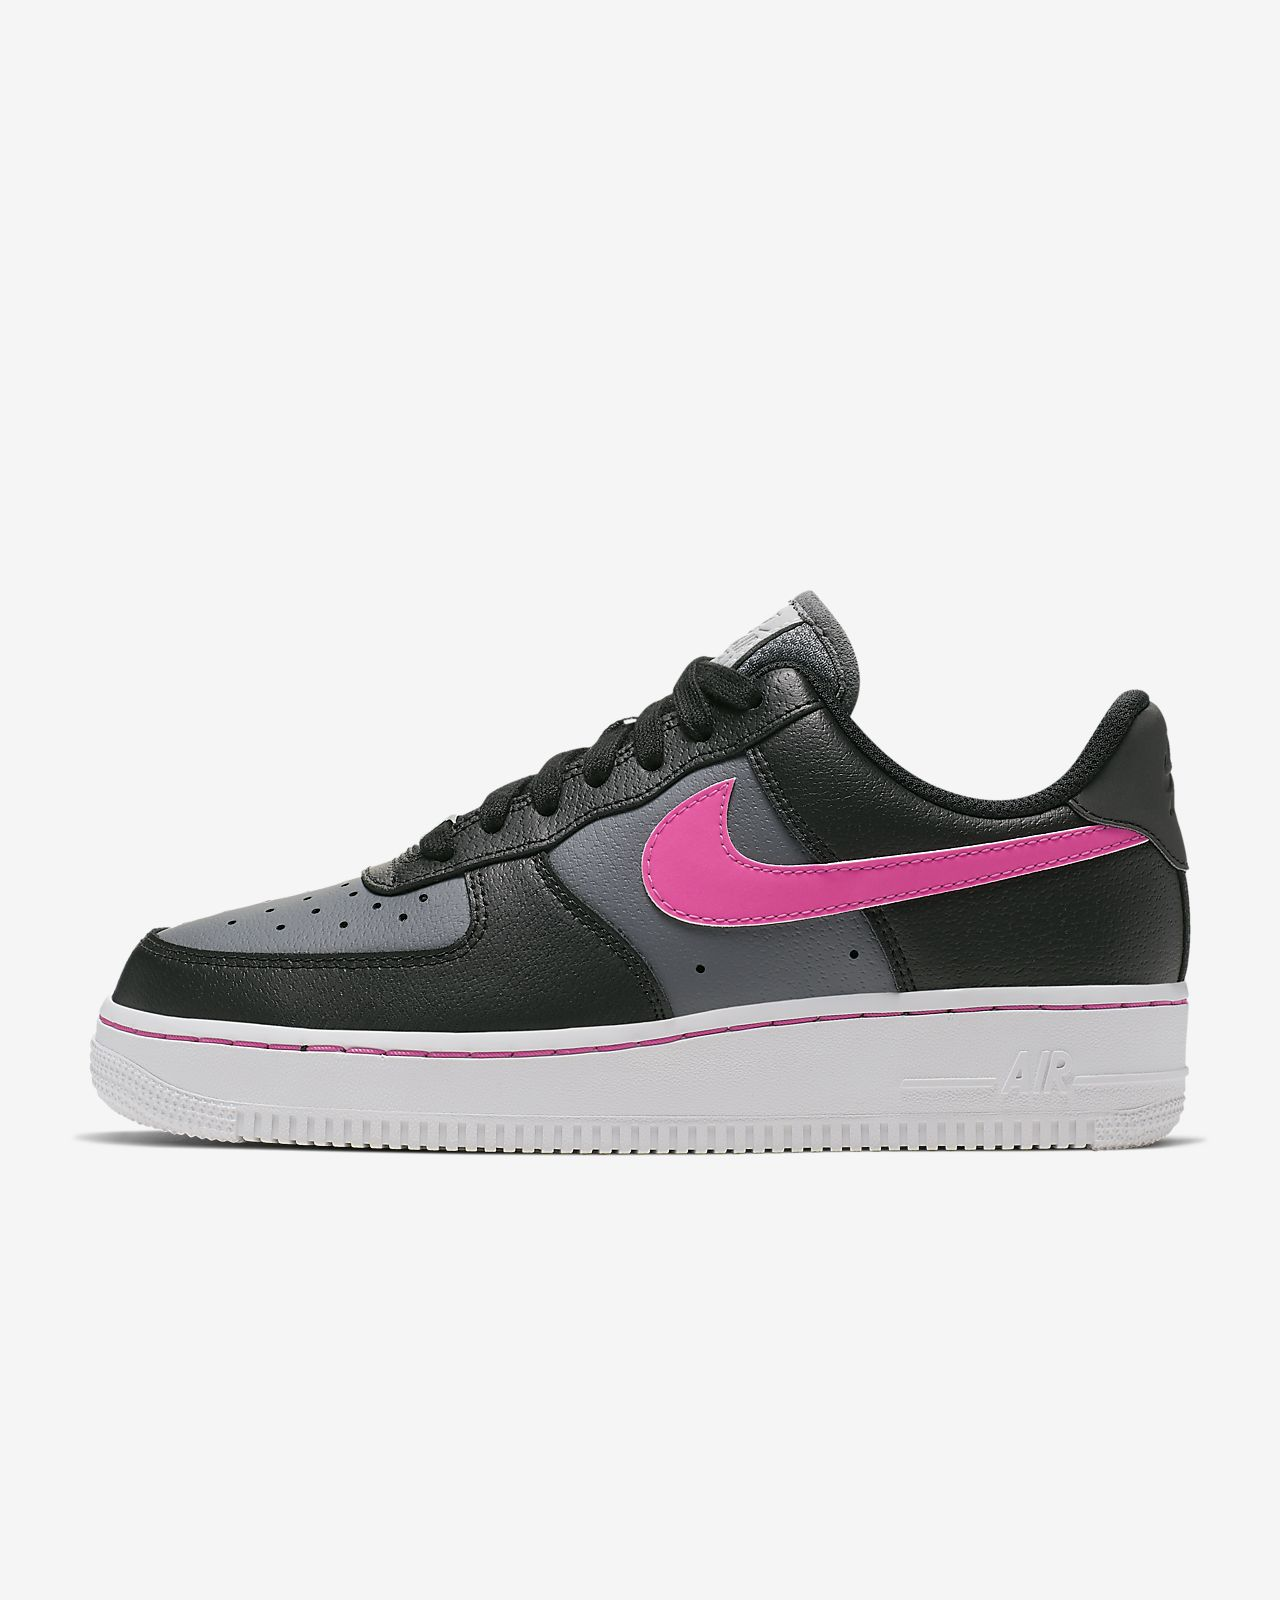 Nike Air Force 1 Low Women's Shoe